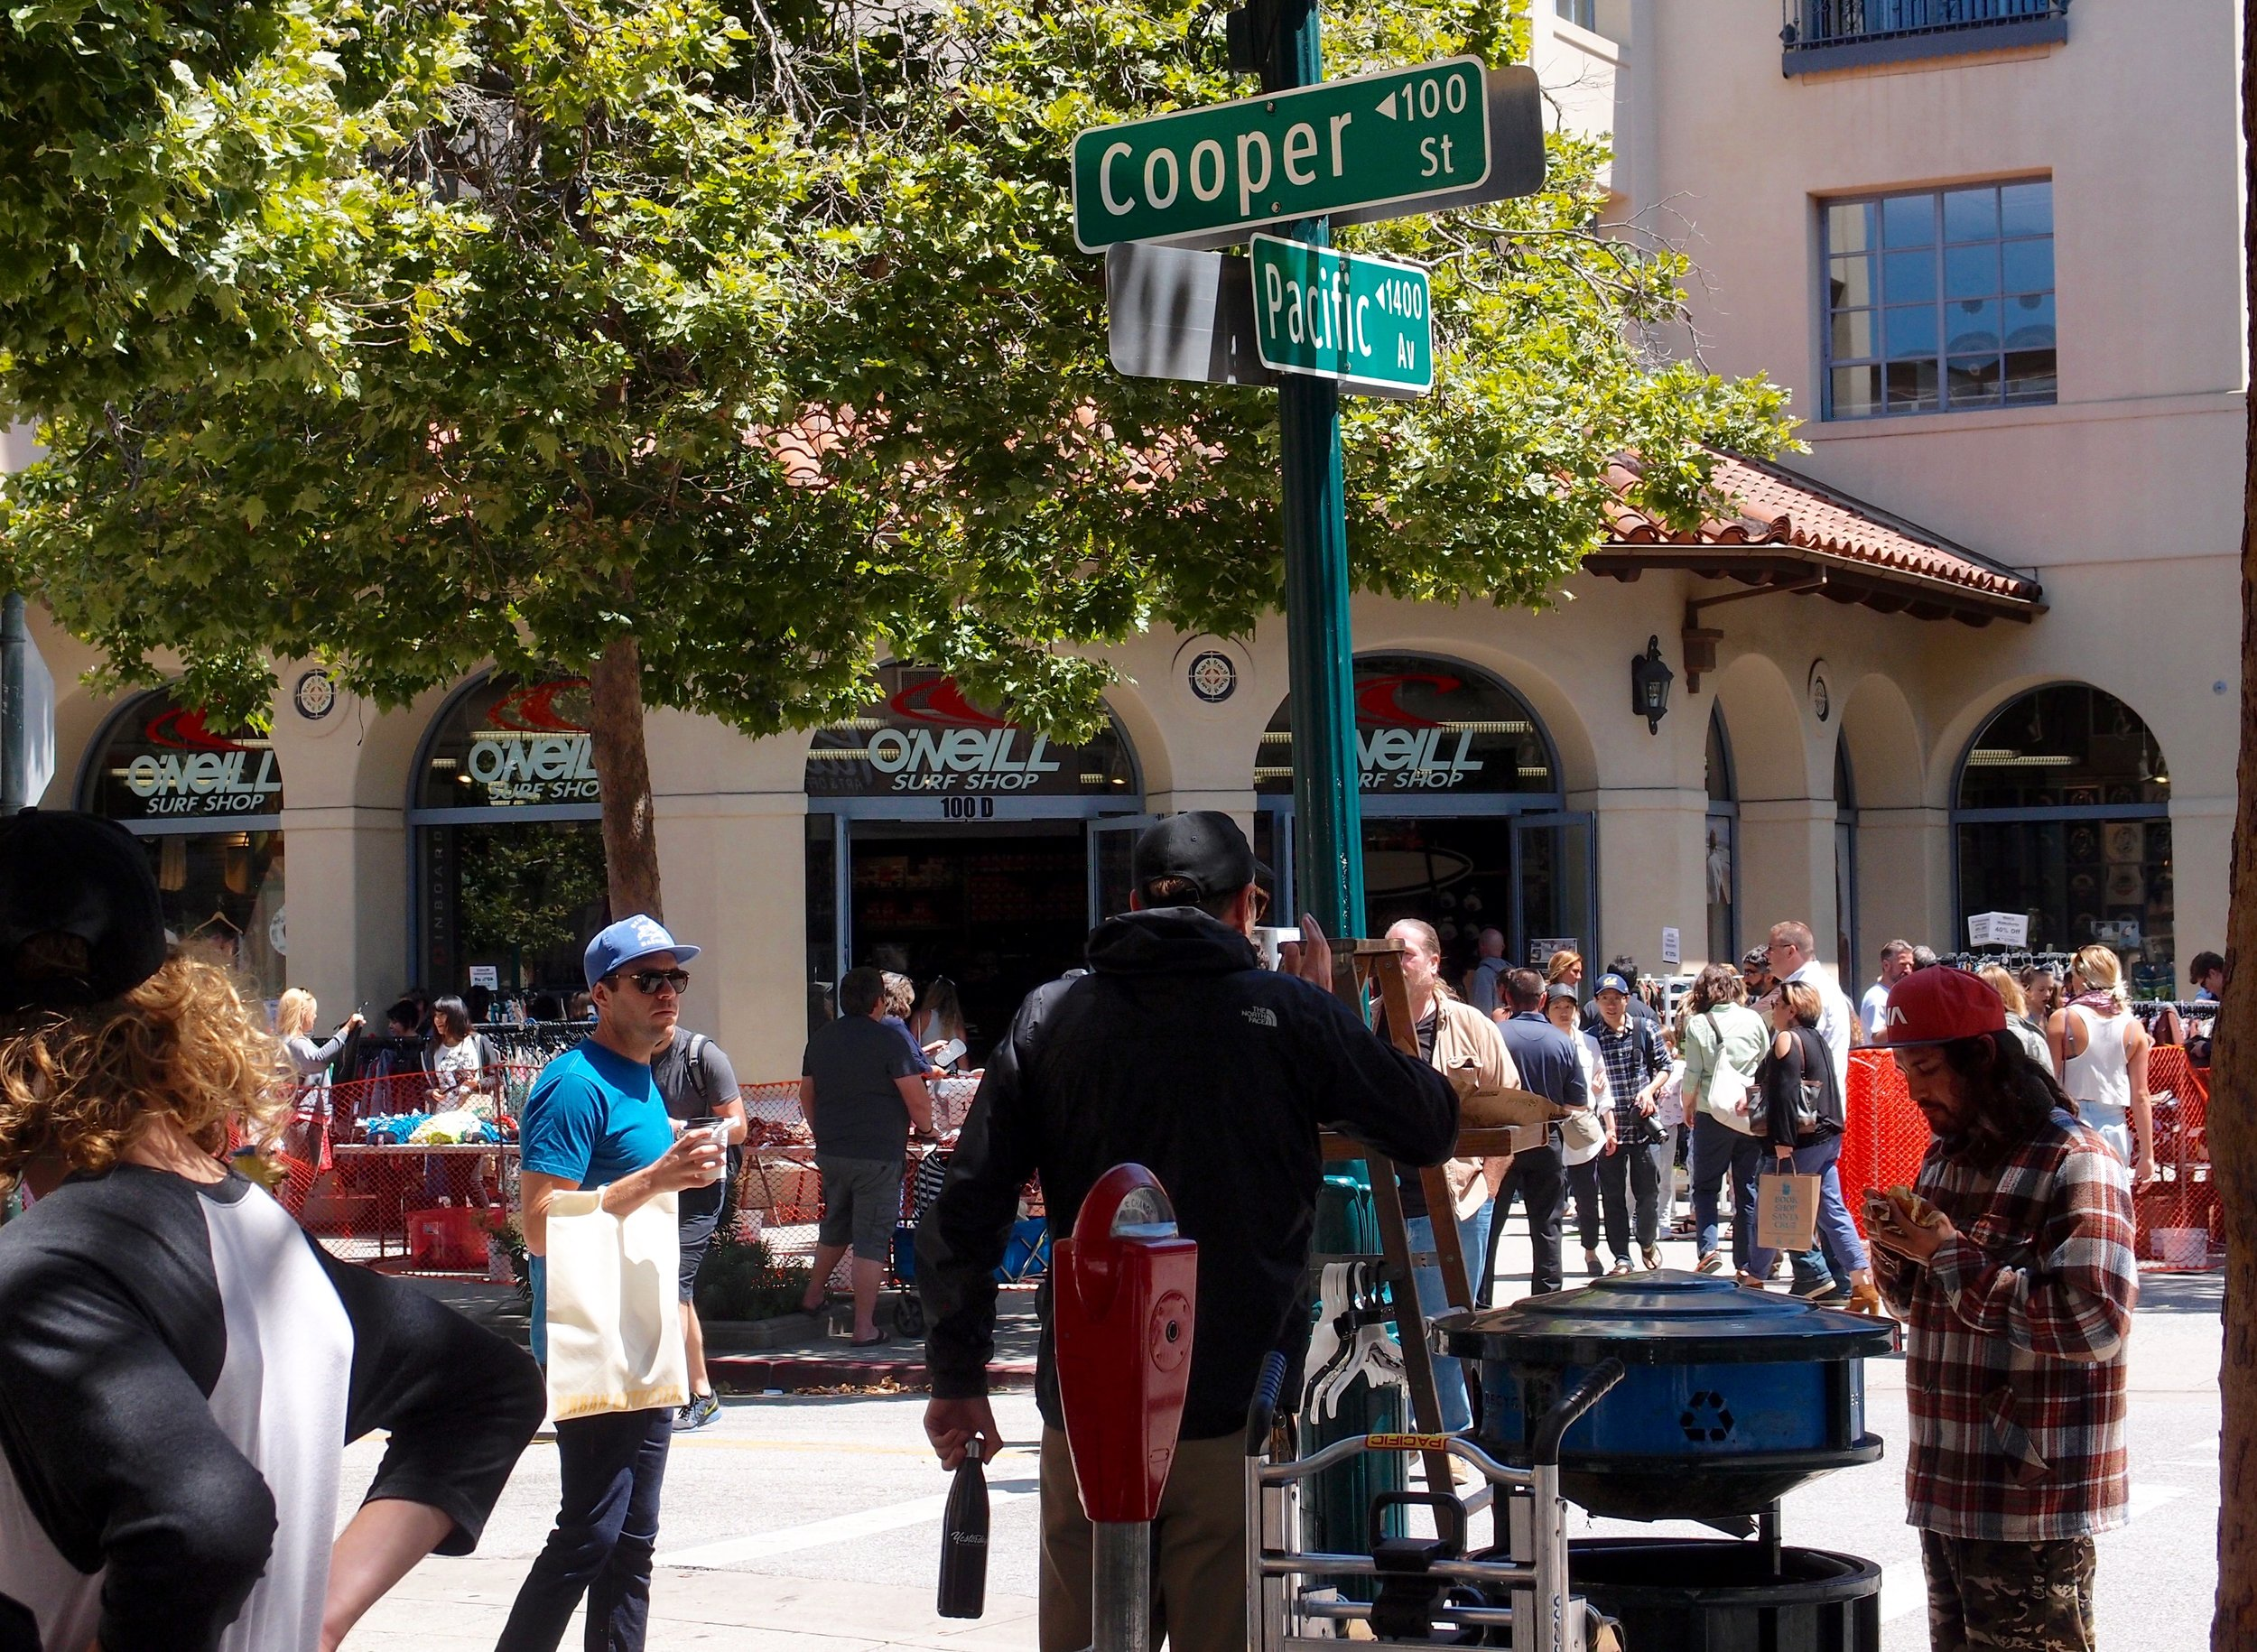 A busy holiday weekend in downtown Santa Cruz.